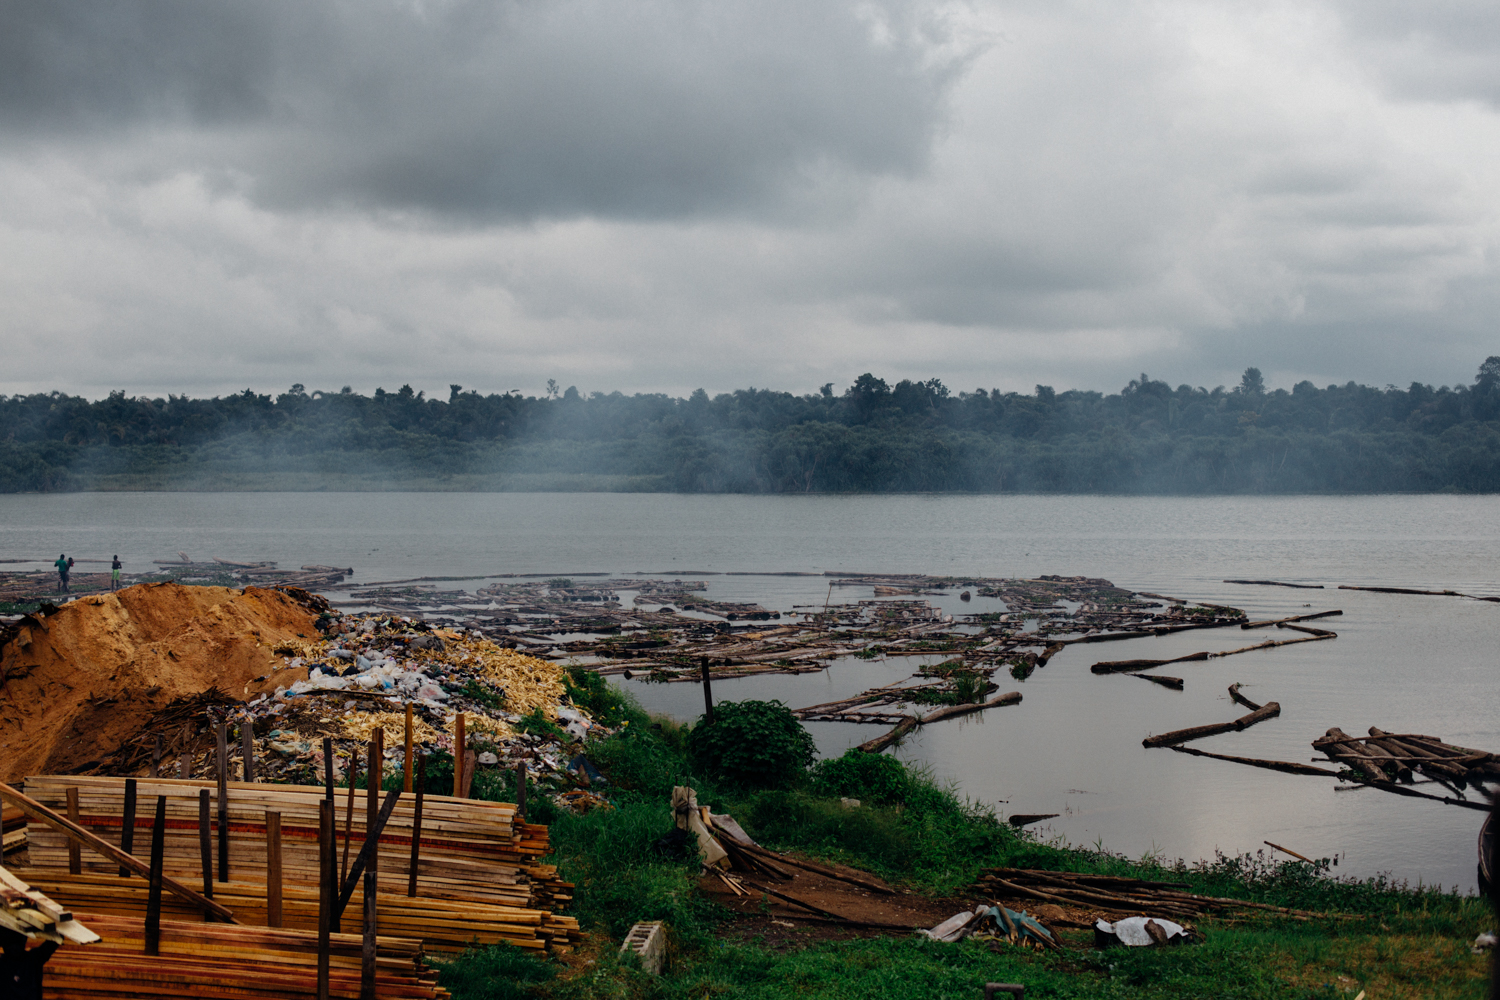 River Ethiope with logs of timber, sawdust and sawed timber in Sapele